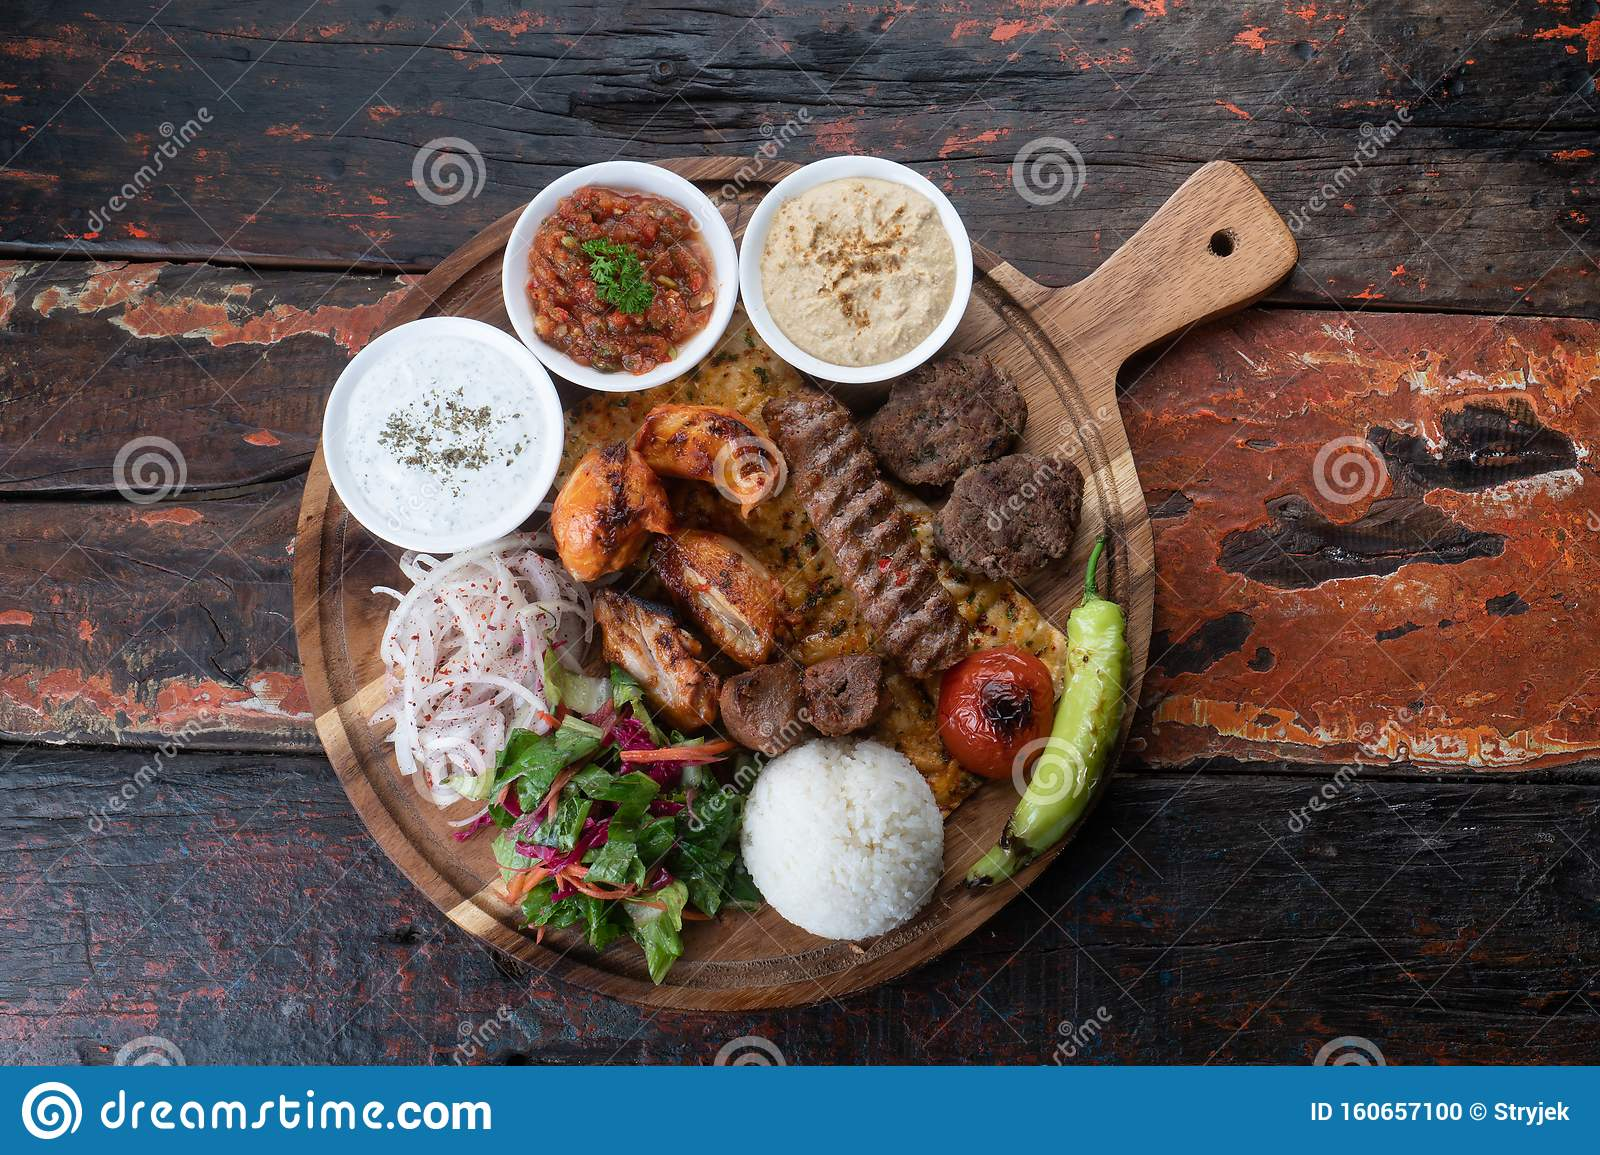 Mixed Turkish Kebab Plate With Rice Vegetables And Dip Sauces On Rustic Wooden Background Stock Photo Image Of Cuisine Eating 160657100